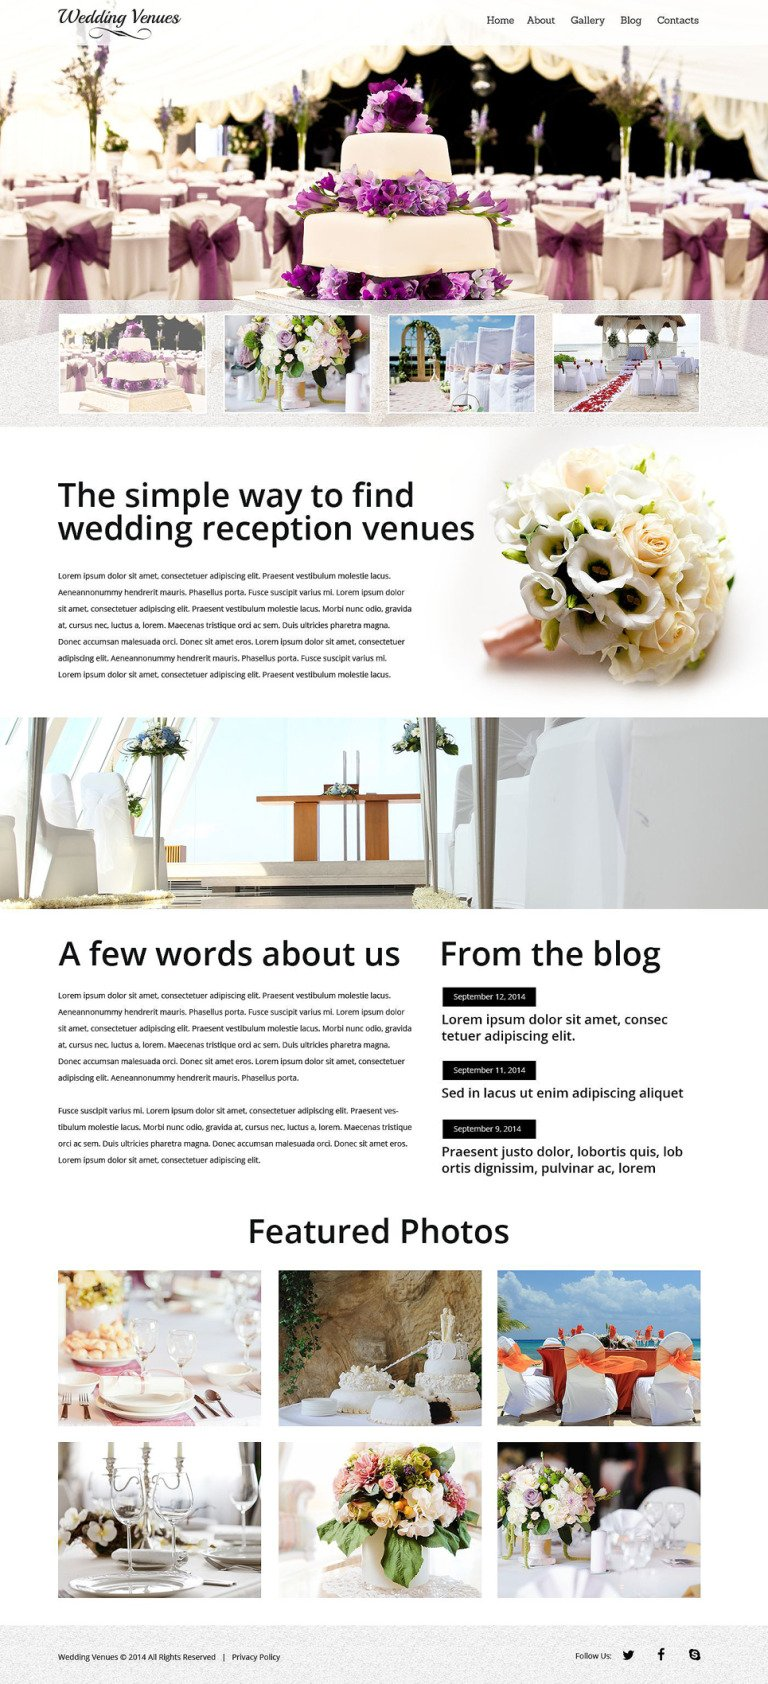 Wedding Venues Responsive Website Template New Screenshots BIG